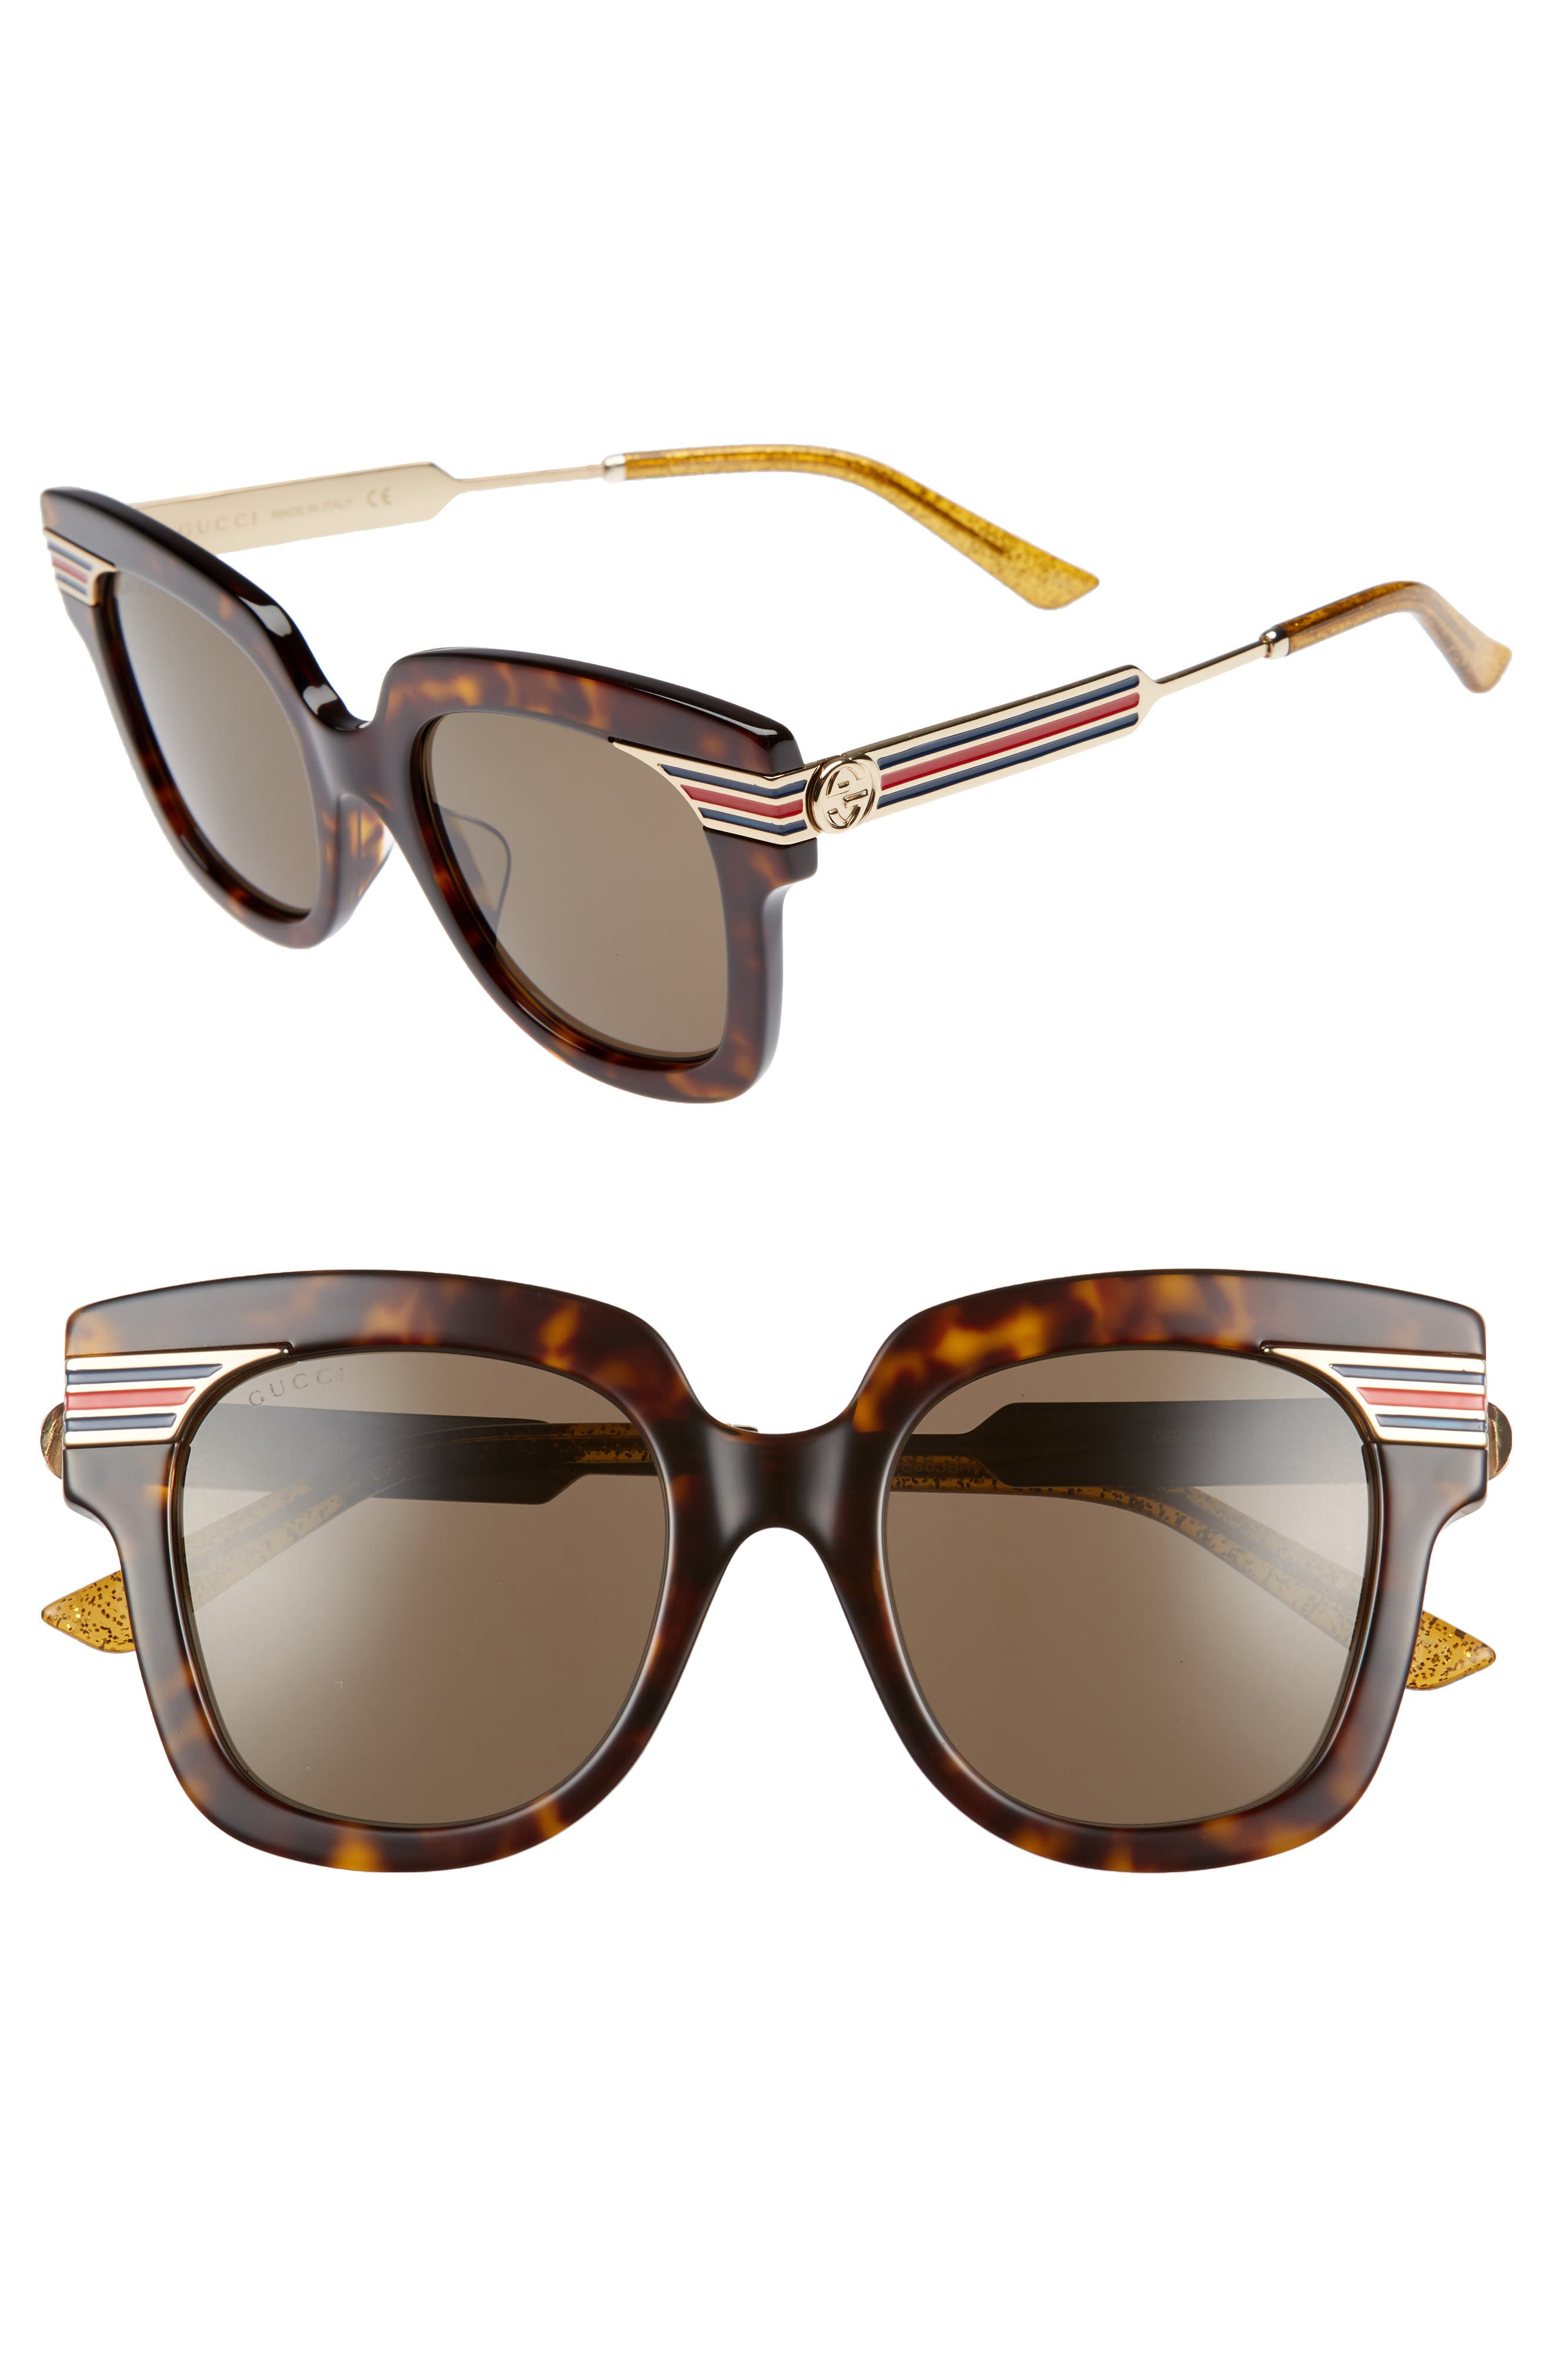 51mm Cat Eye Sunglasses,                             Main thumbnail 1, color,                             DARK HAVANA/ GOLD